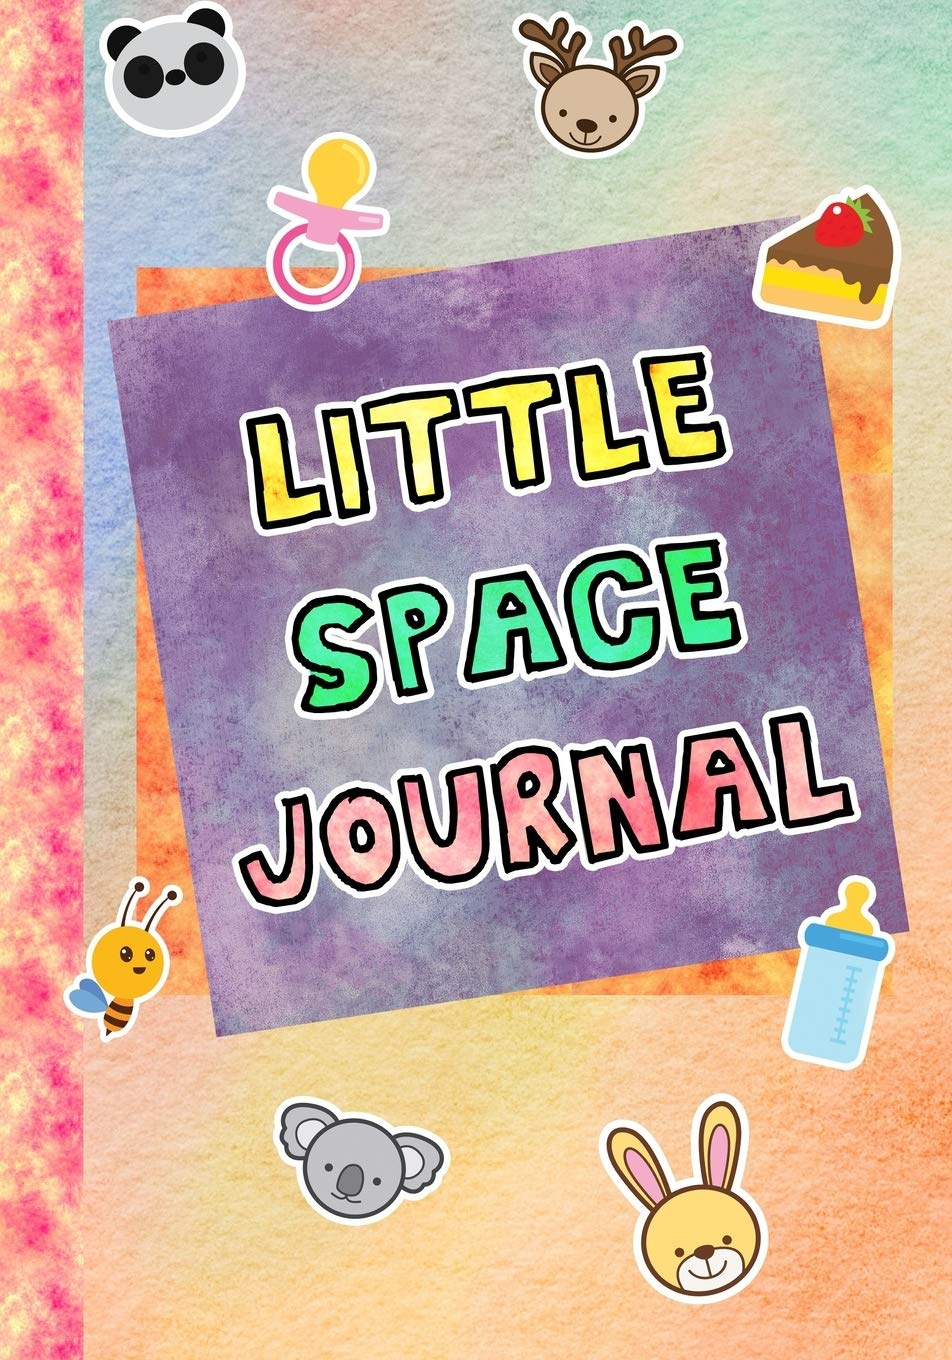 Amazon Com Little Space Journal Age Regression Diary With Both Guided And Lined Pages 9781701786806 Princess Bdsm Books Youtube thankfully has a quick channel. amazon com little space journal age